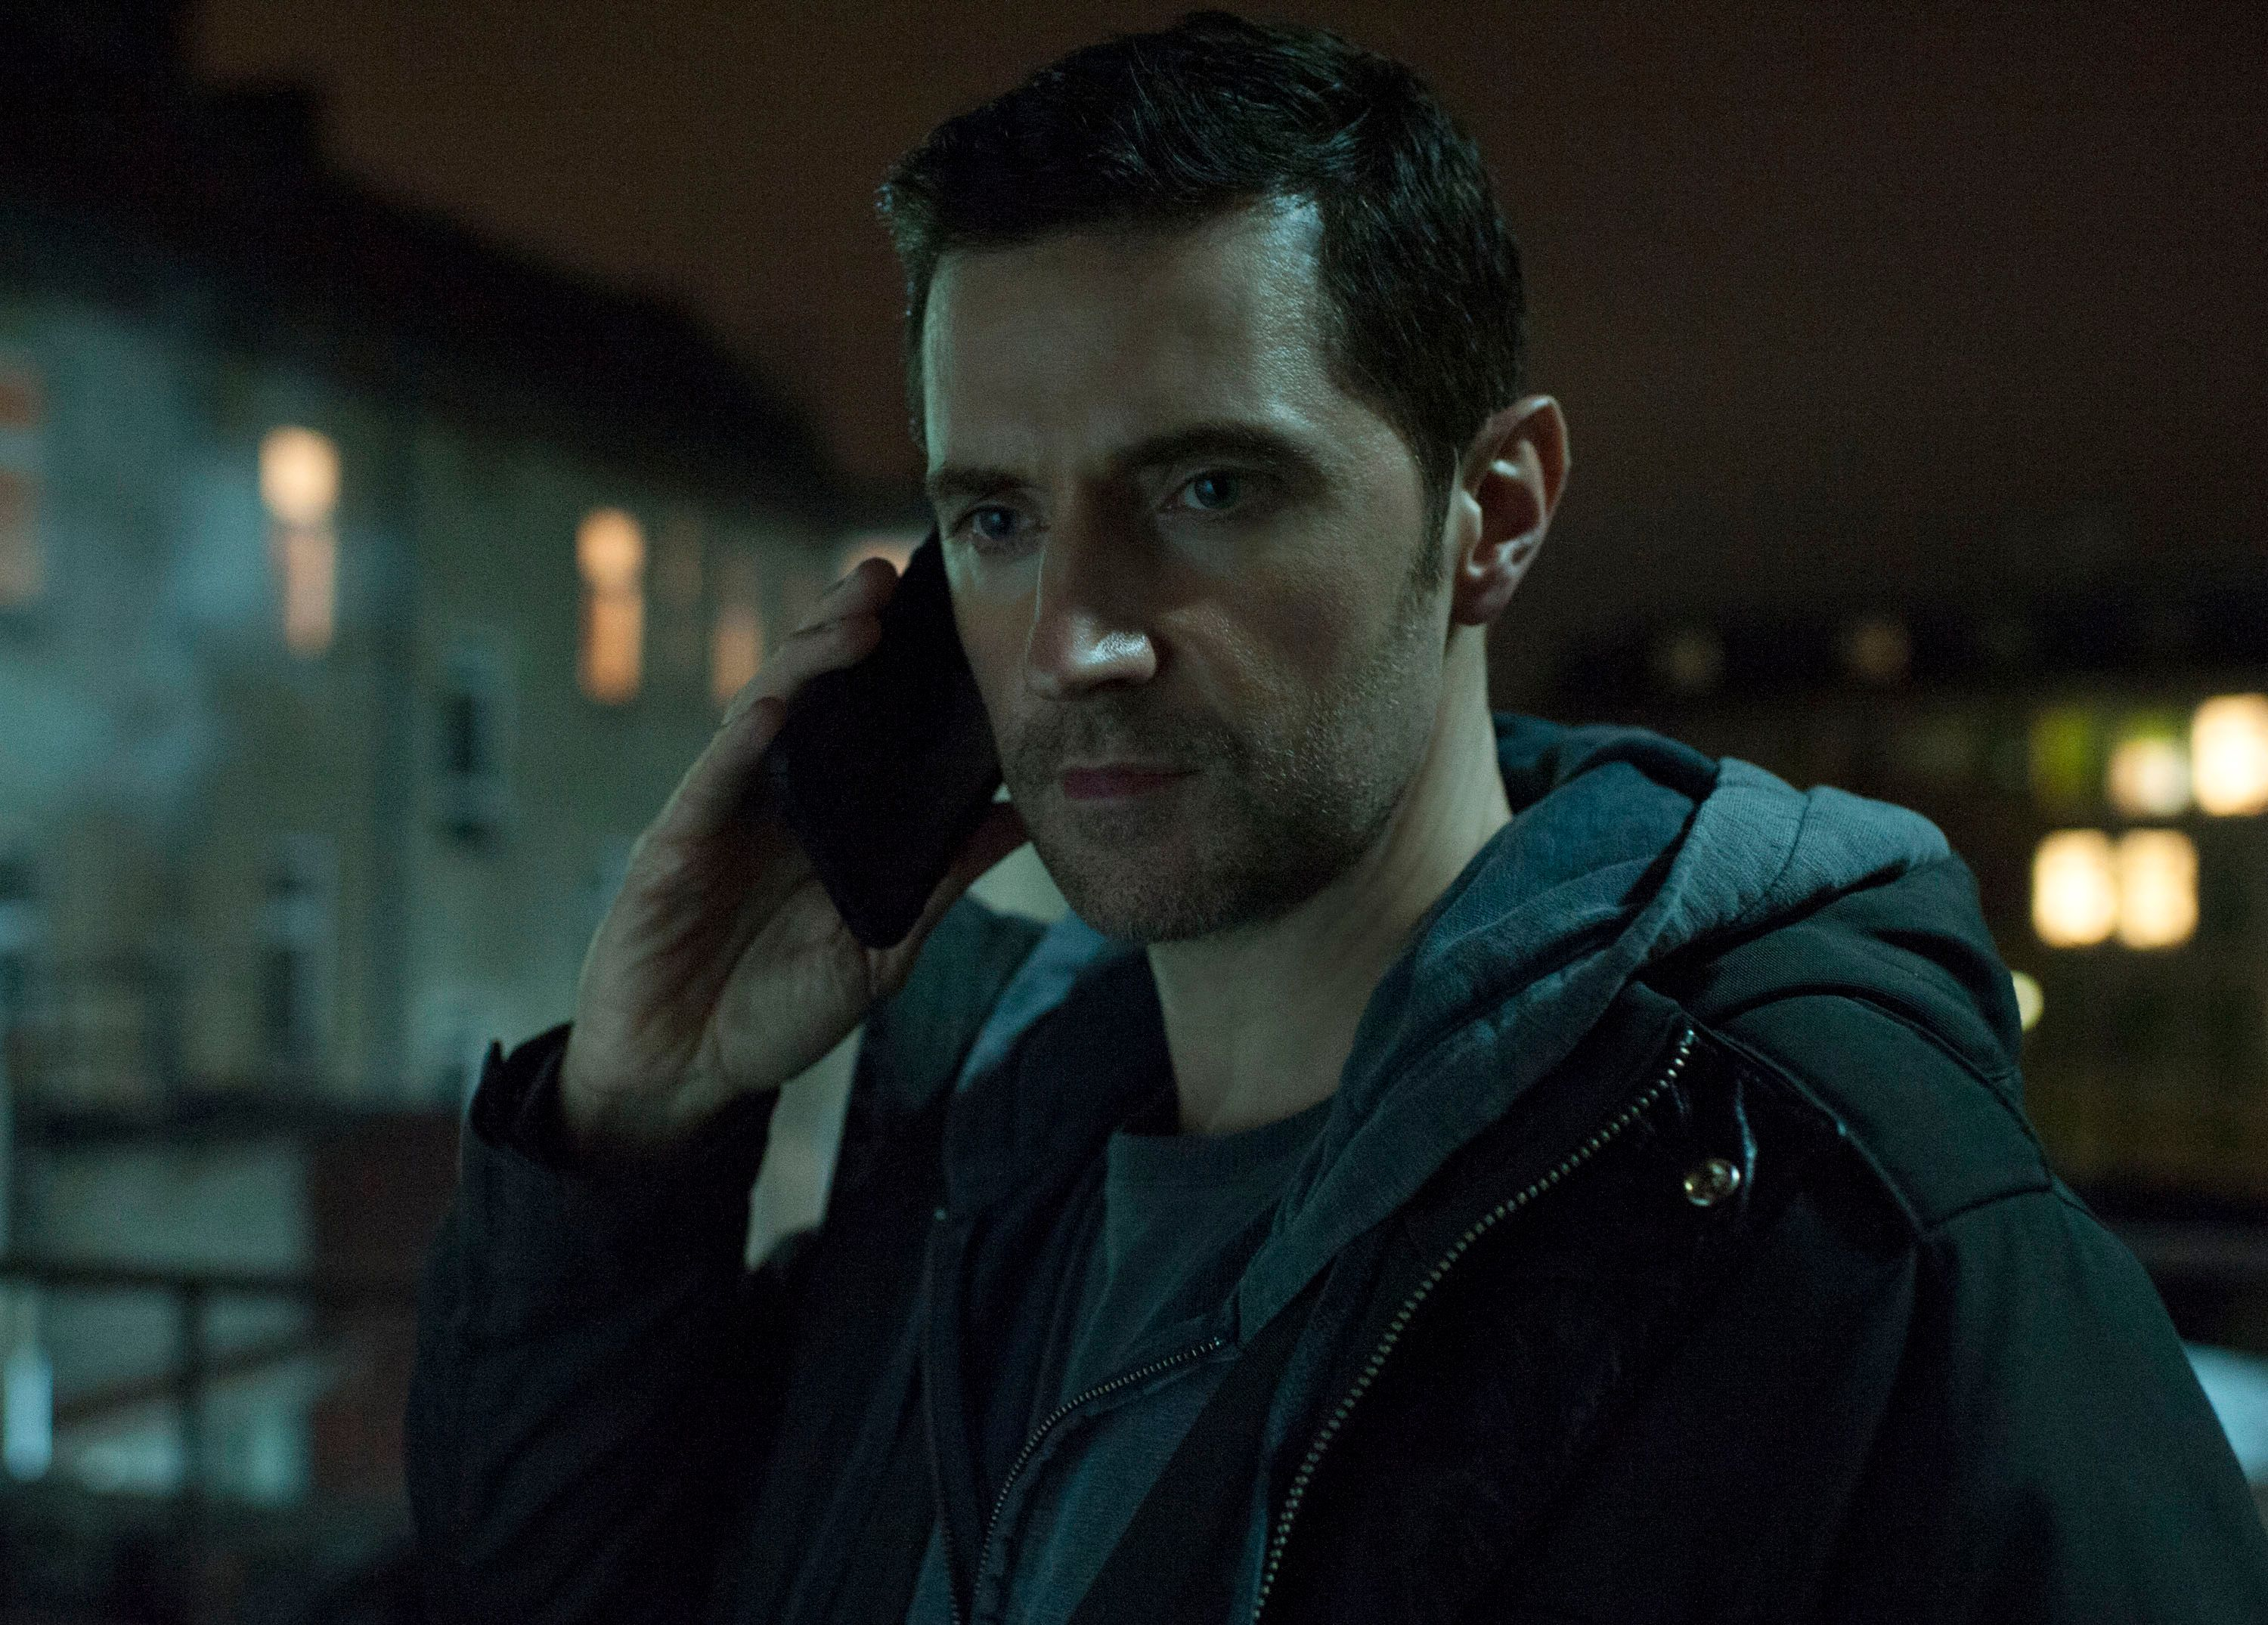 Does Identifying Armitage As Original >> Richard Armitage On Epix Spy Series Berlin Station Collider